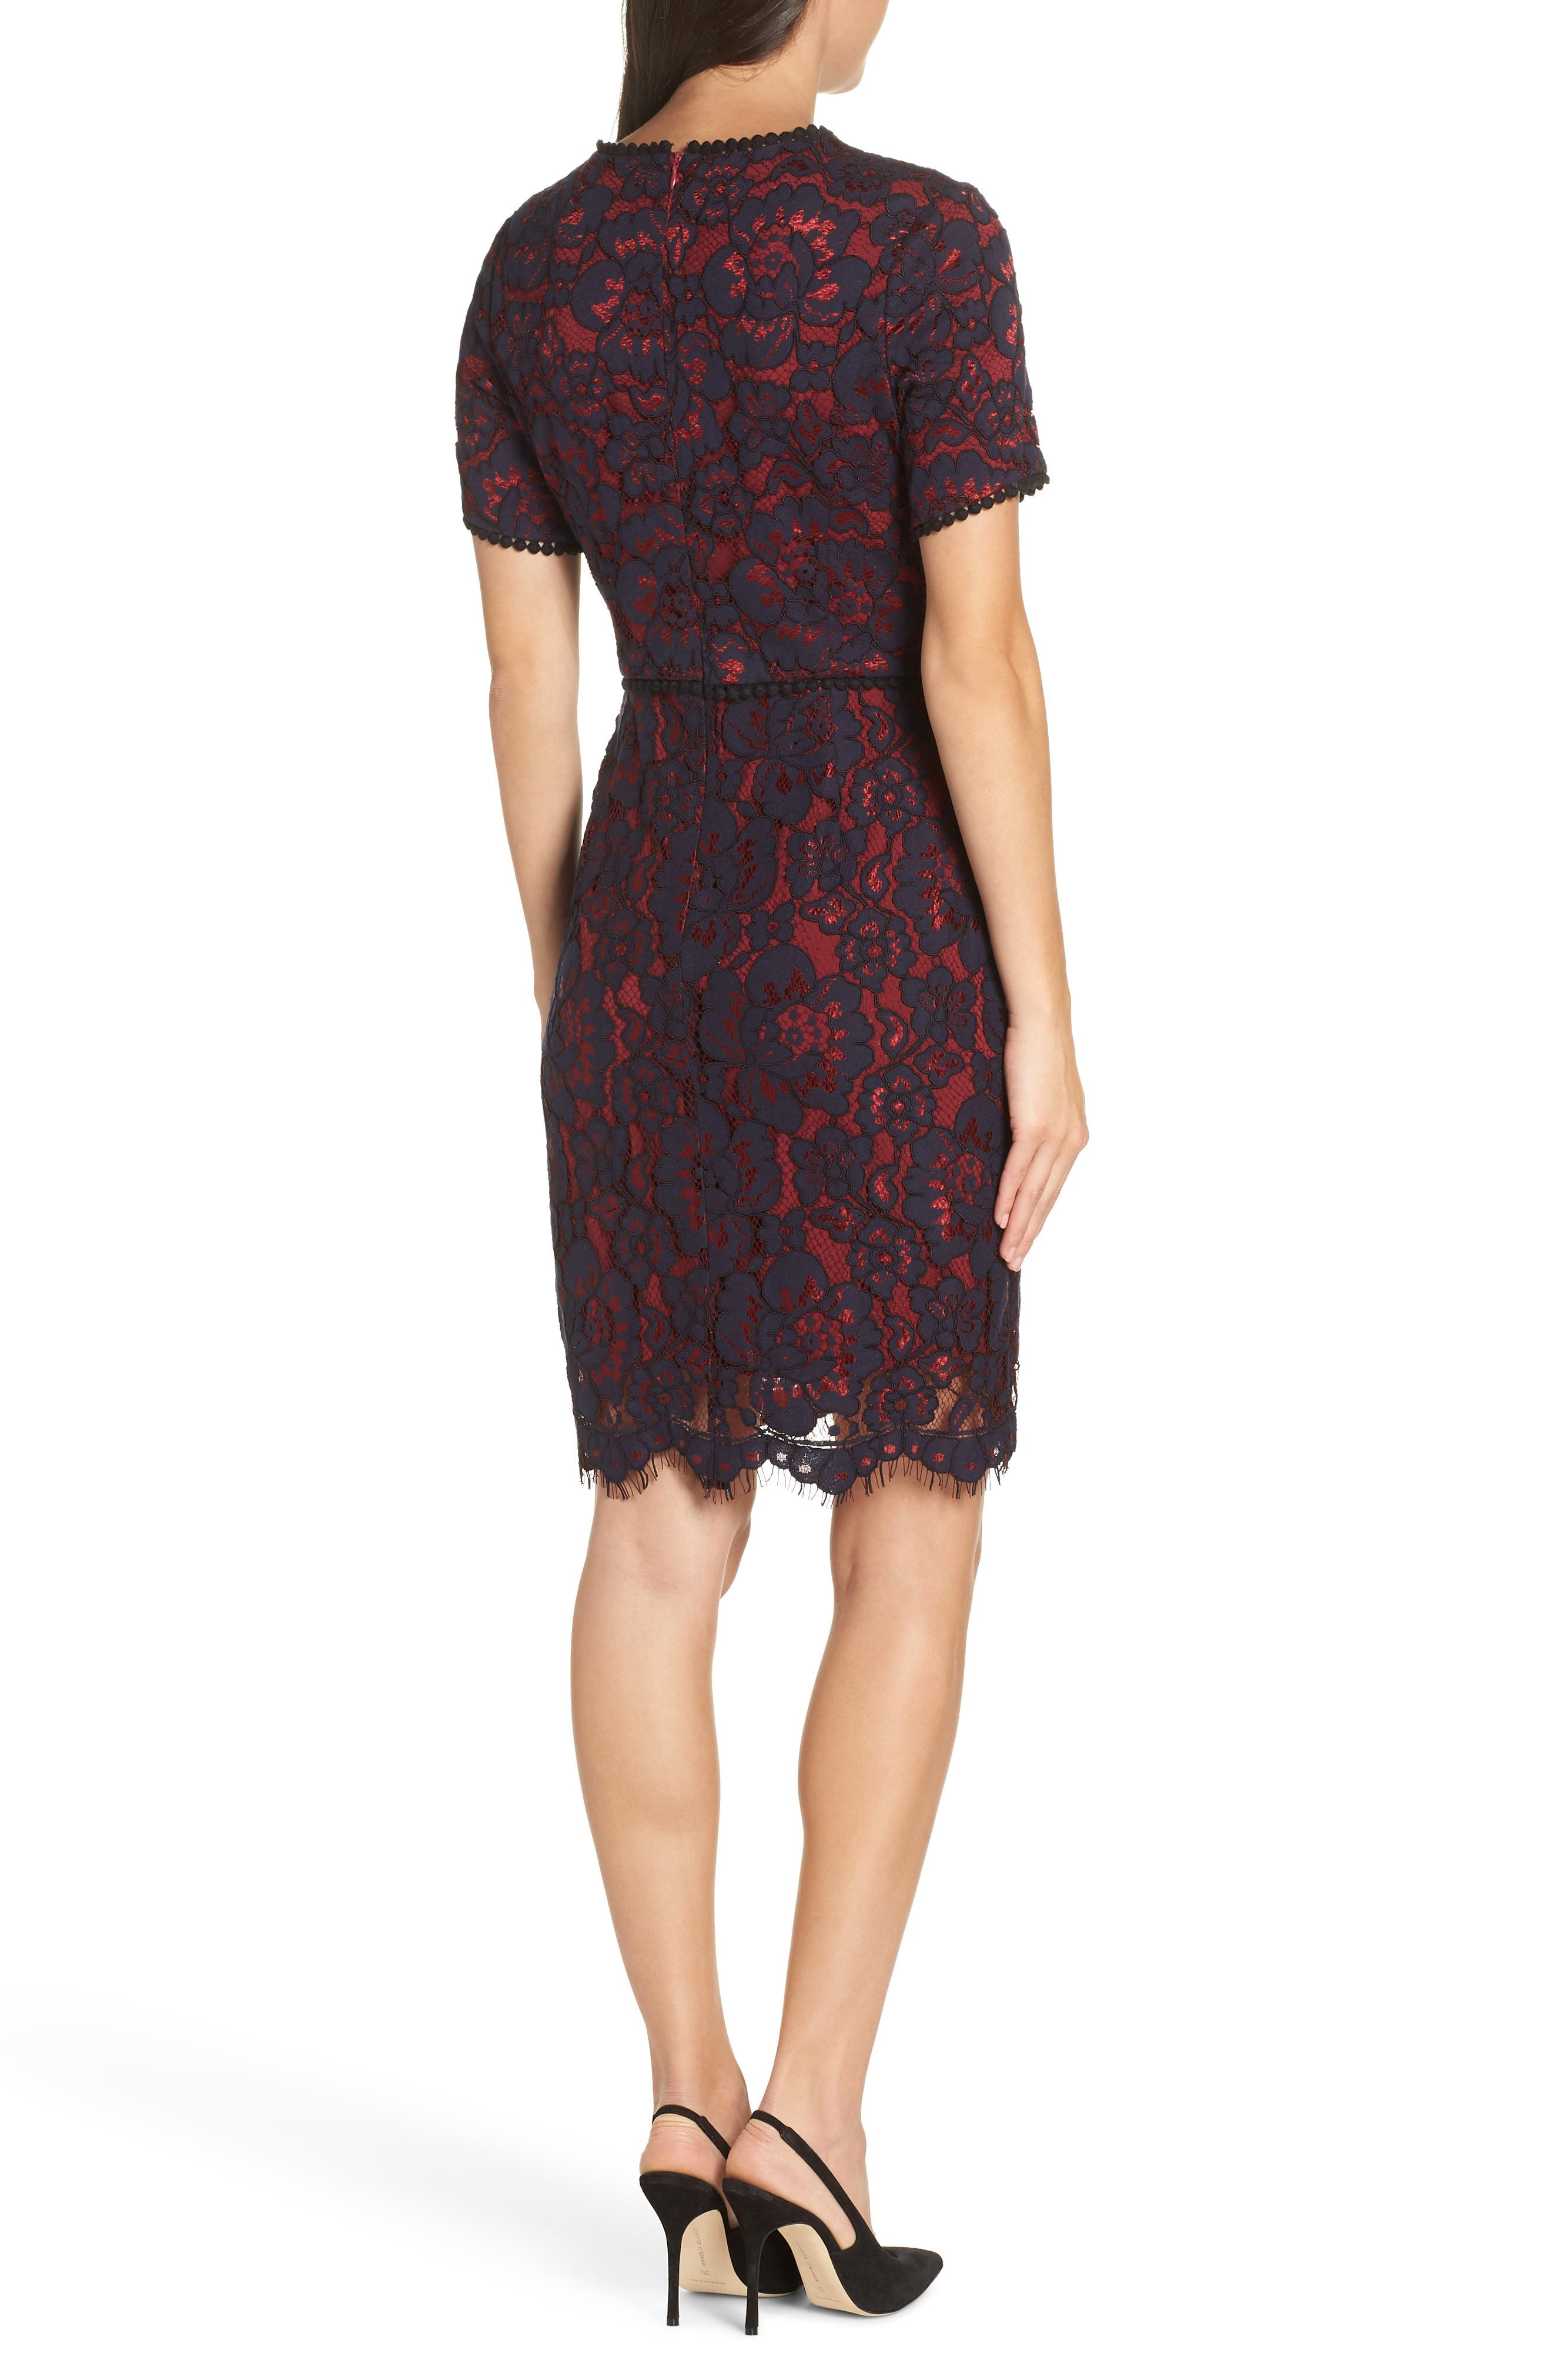 CHARLES HENRY, Lace Sheath Dress, Alternate thumbnail 2, color, 438